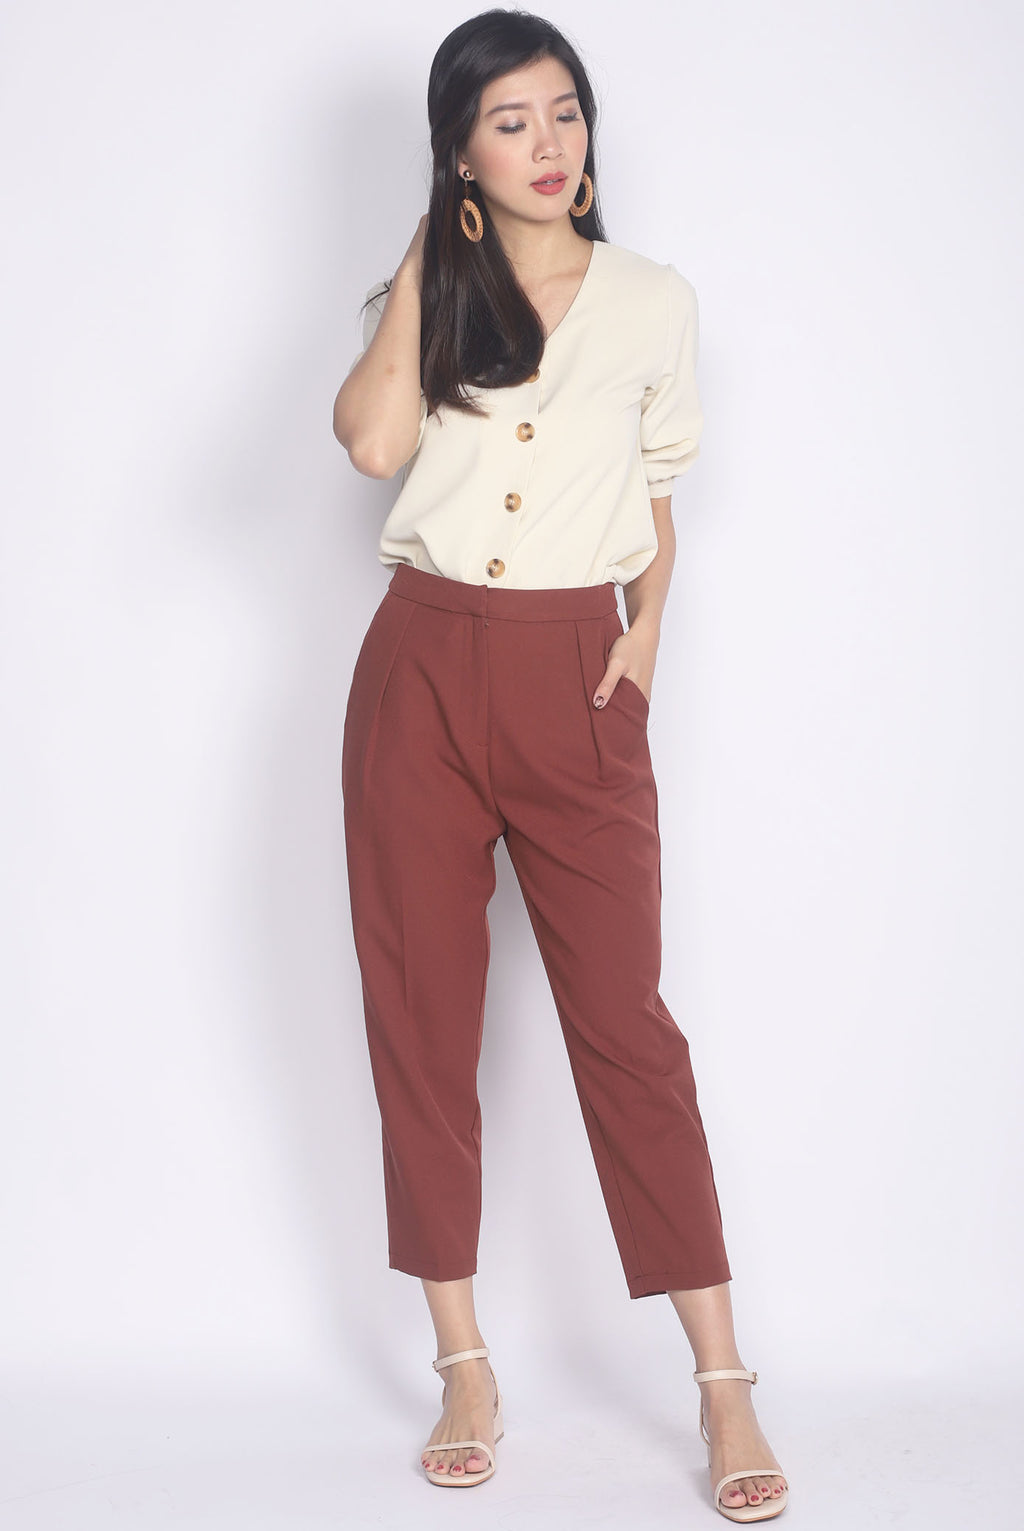 Abelie Pants In Terracotta